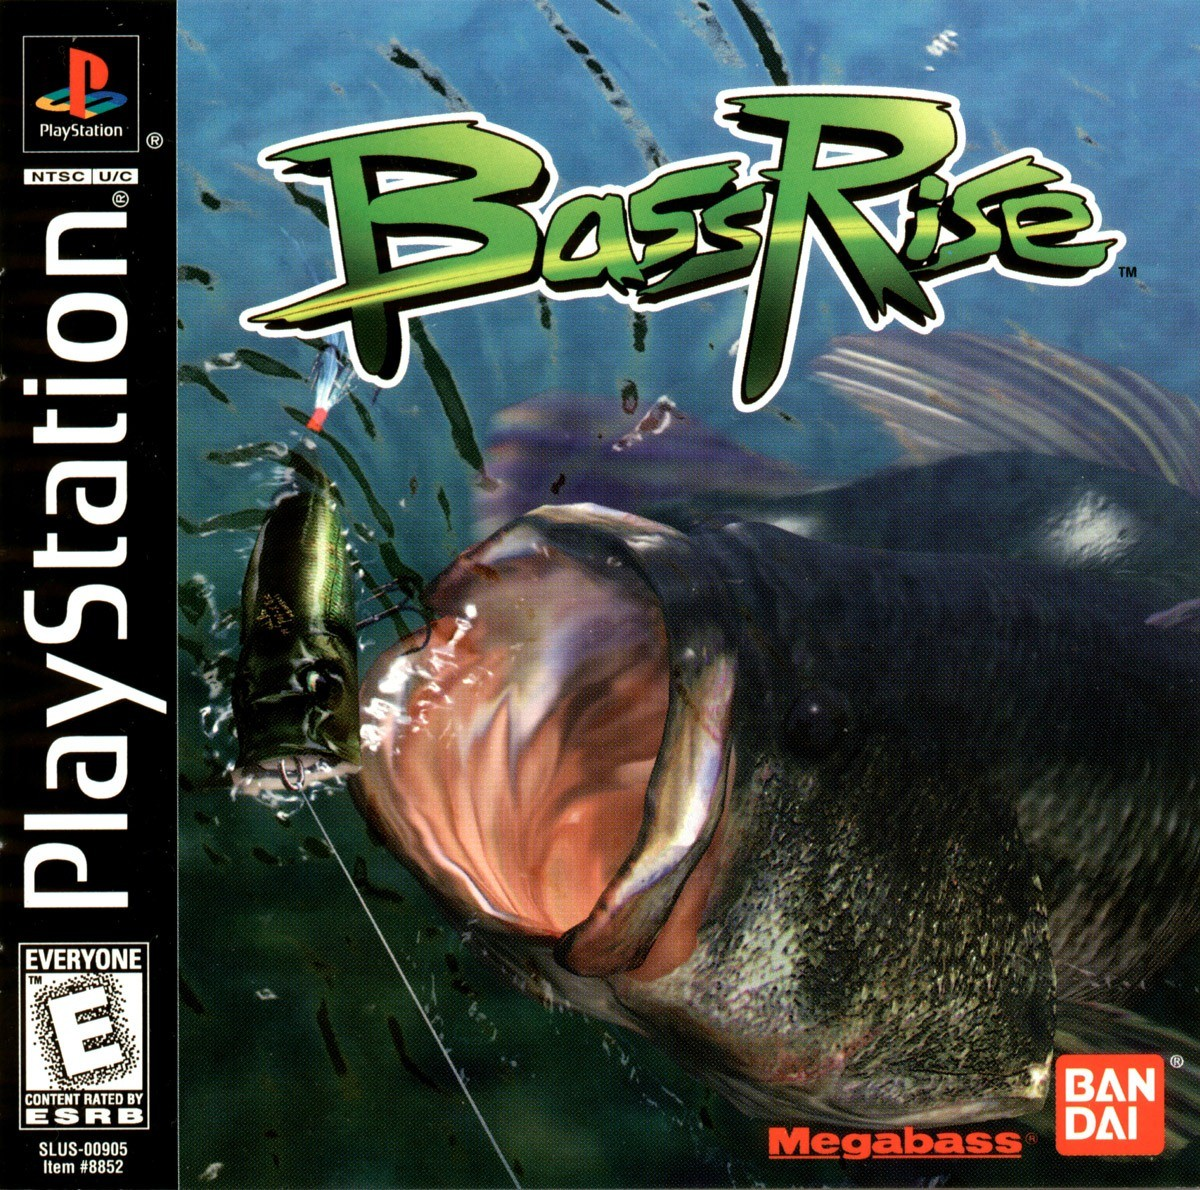 Bassrise fishing u iso download for Ps3 fishing games